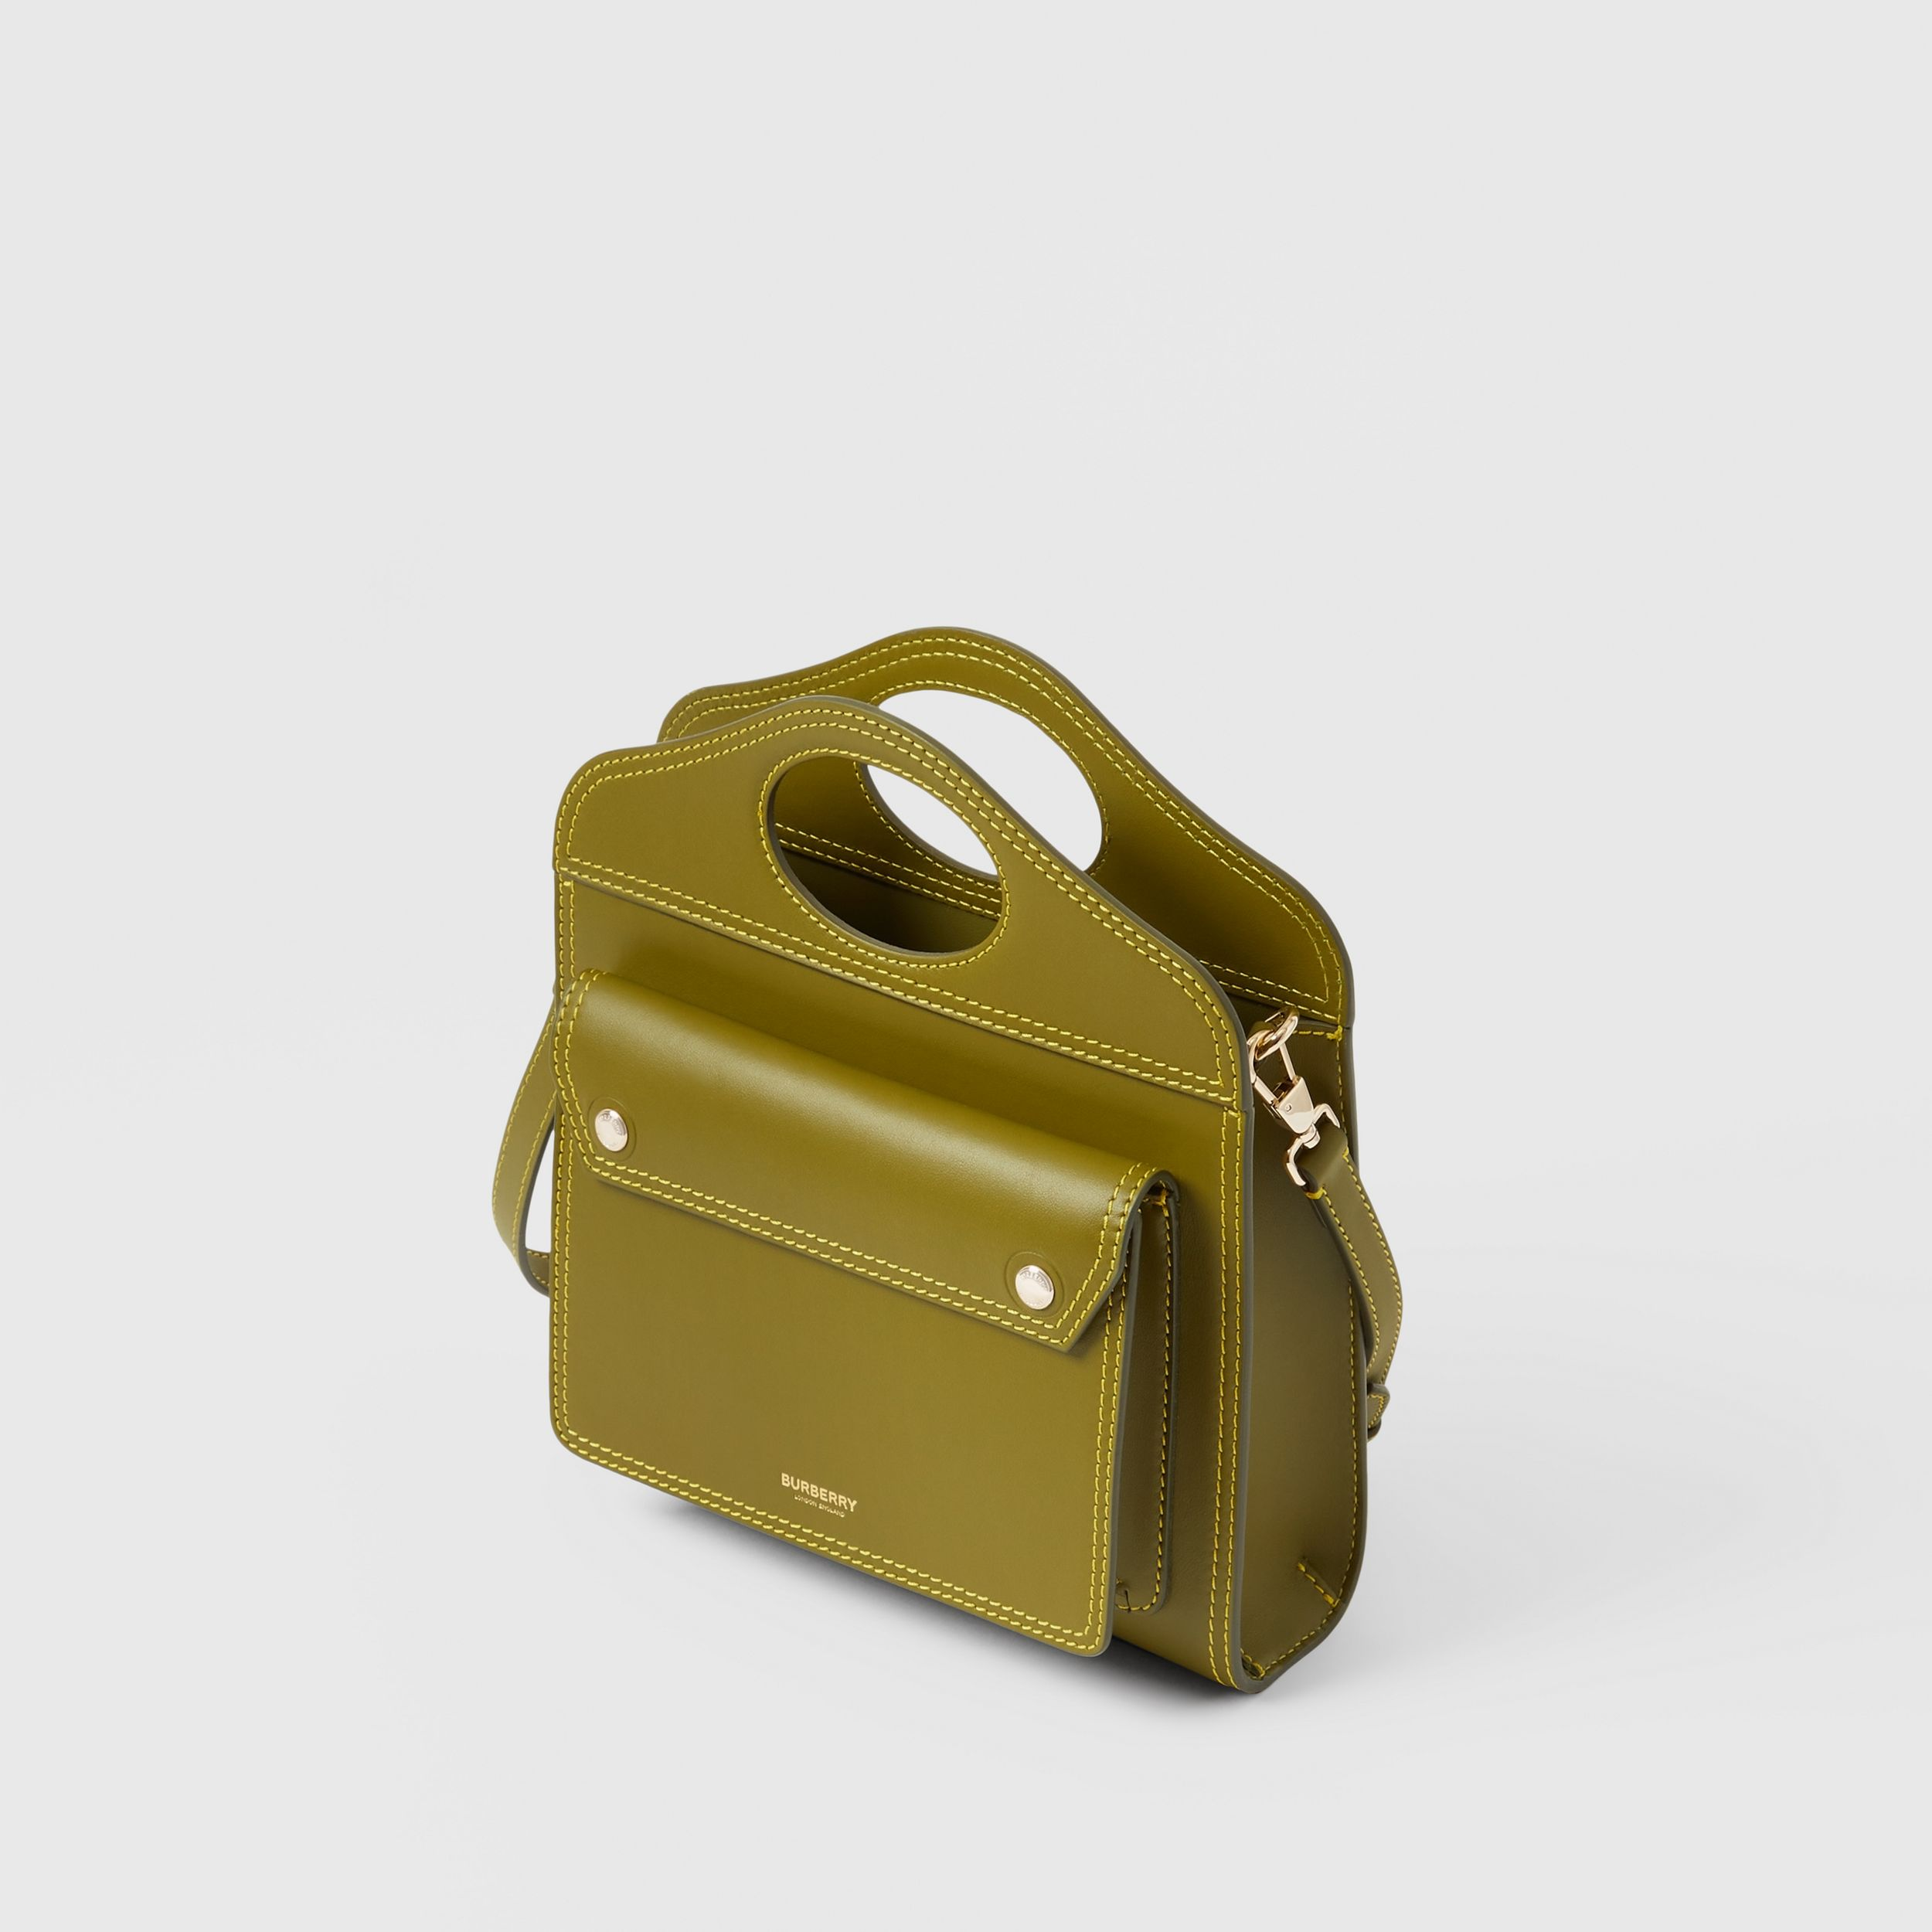 Mini Topstitched Leather Pocket Bag in Juniper Green - Women | Burberry Singapore - 4